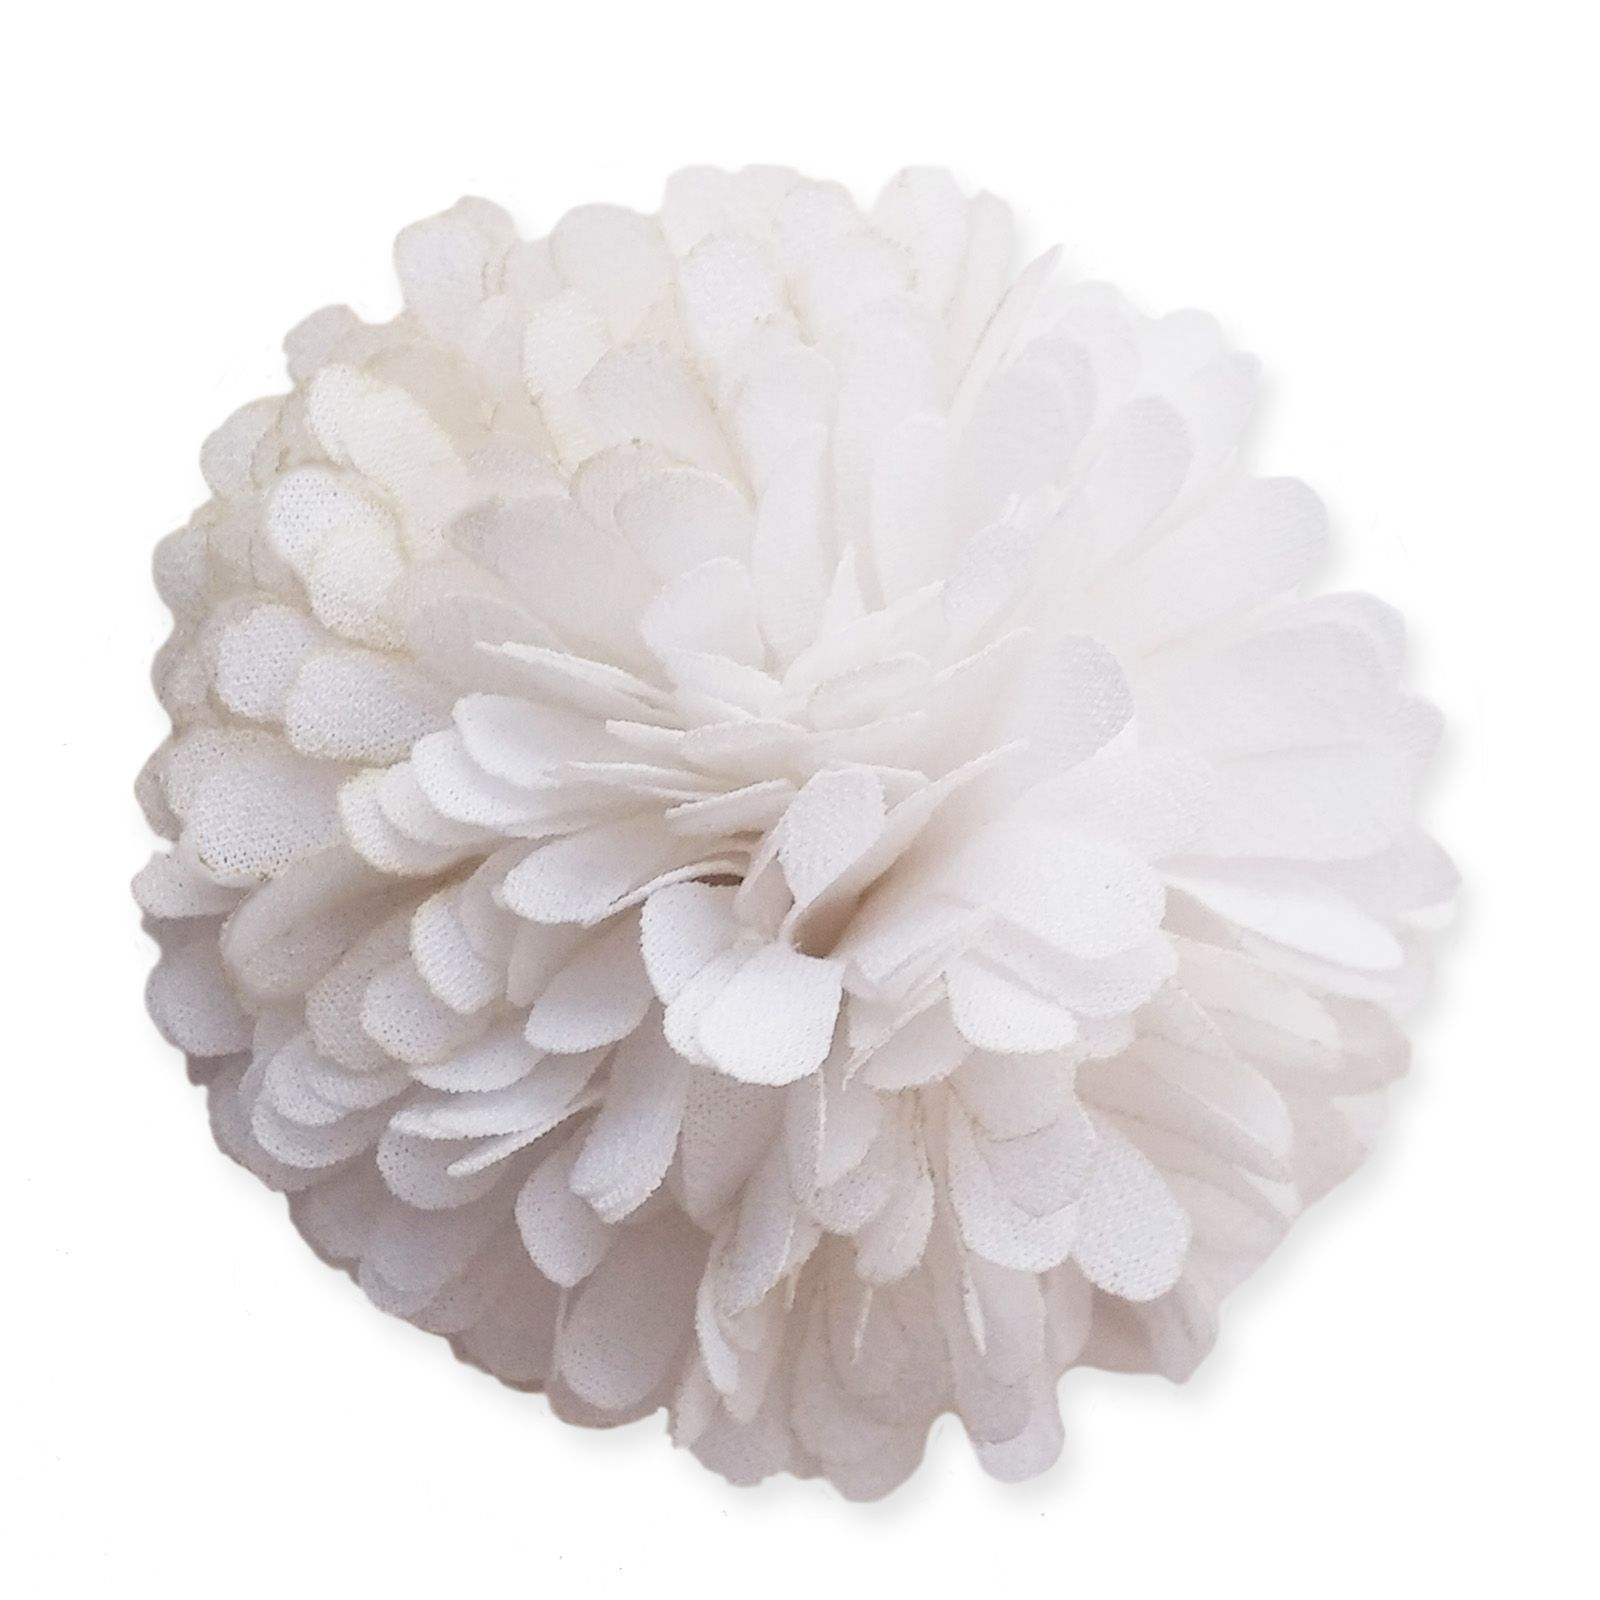 6cm marigold pompom white fabric flower applique mightylinksfo